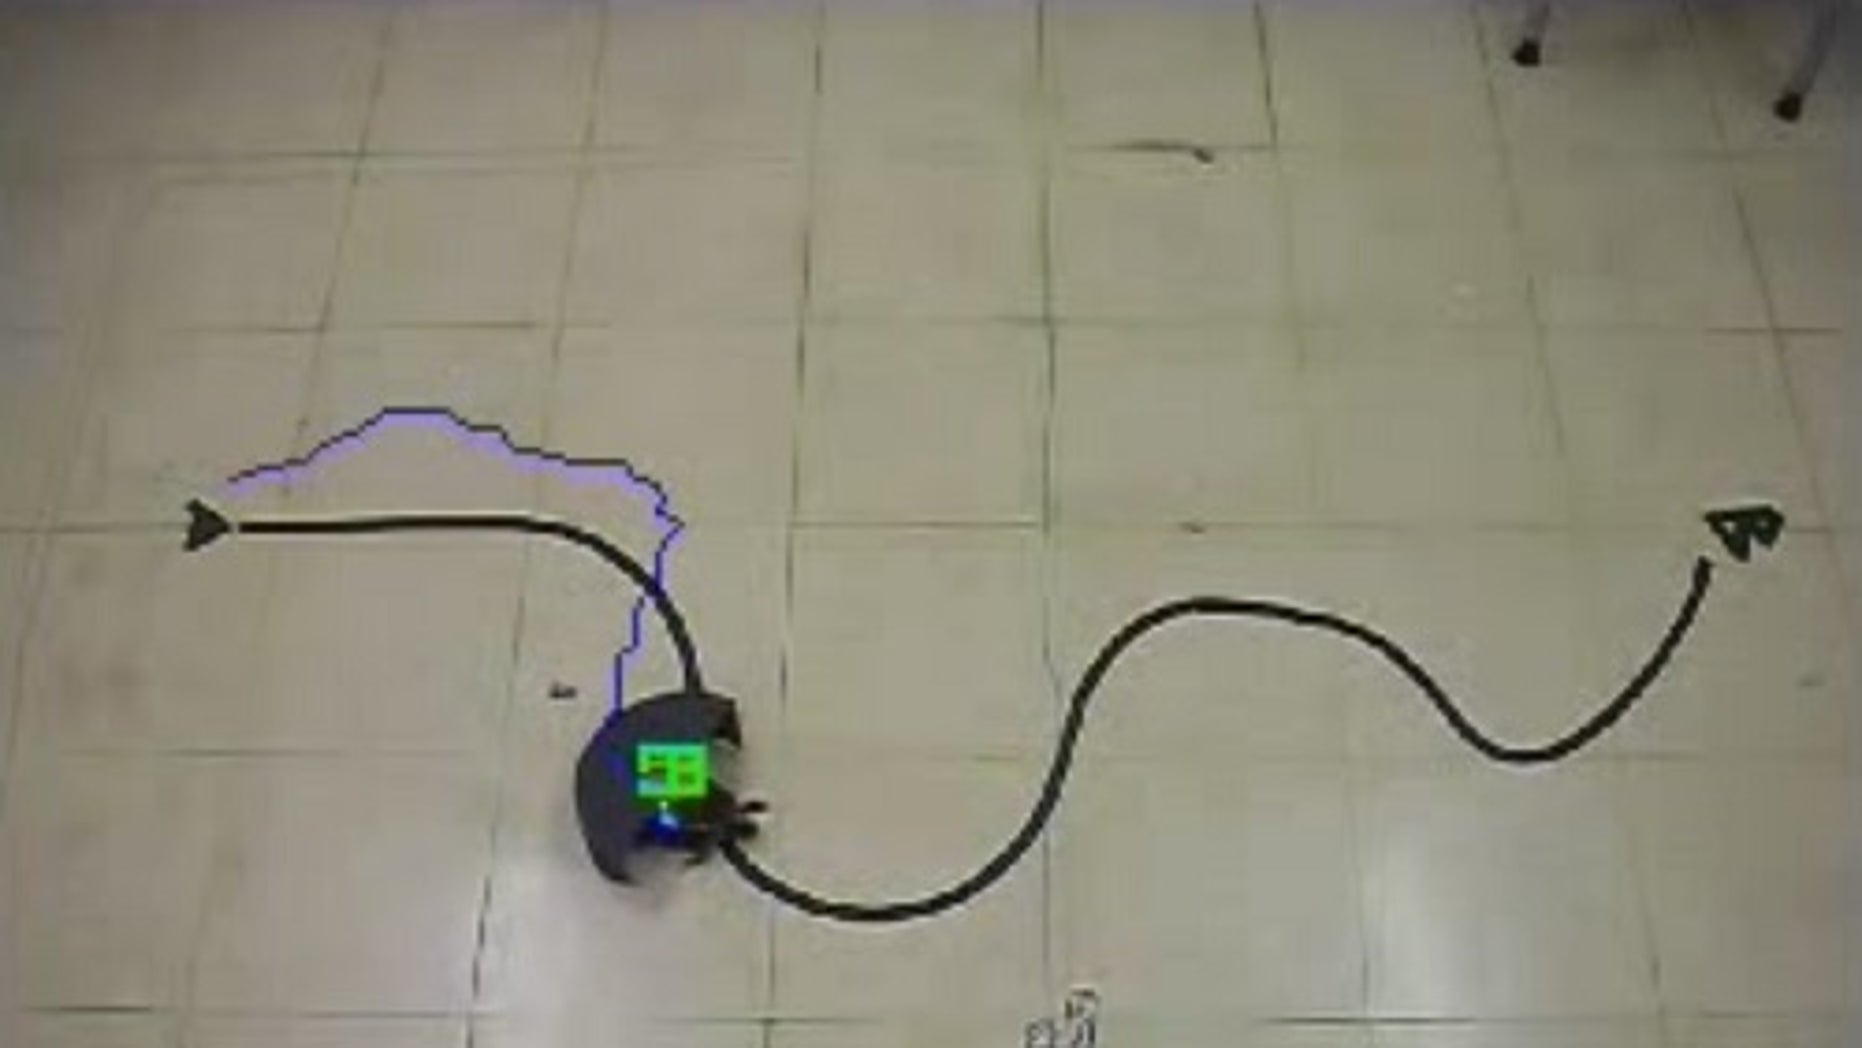 This video still shows a red-eared slider being guided along a set path. The half-cylinder device on the animal's back swings around to simulate obstacles, causing it to turn.